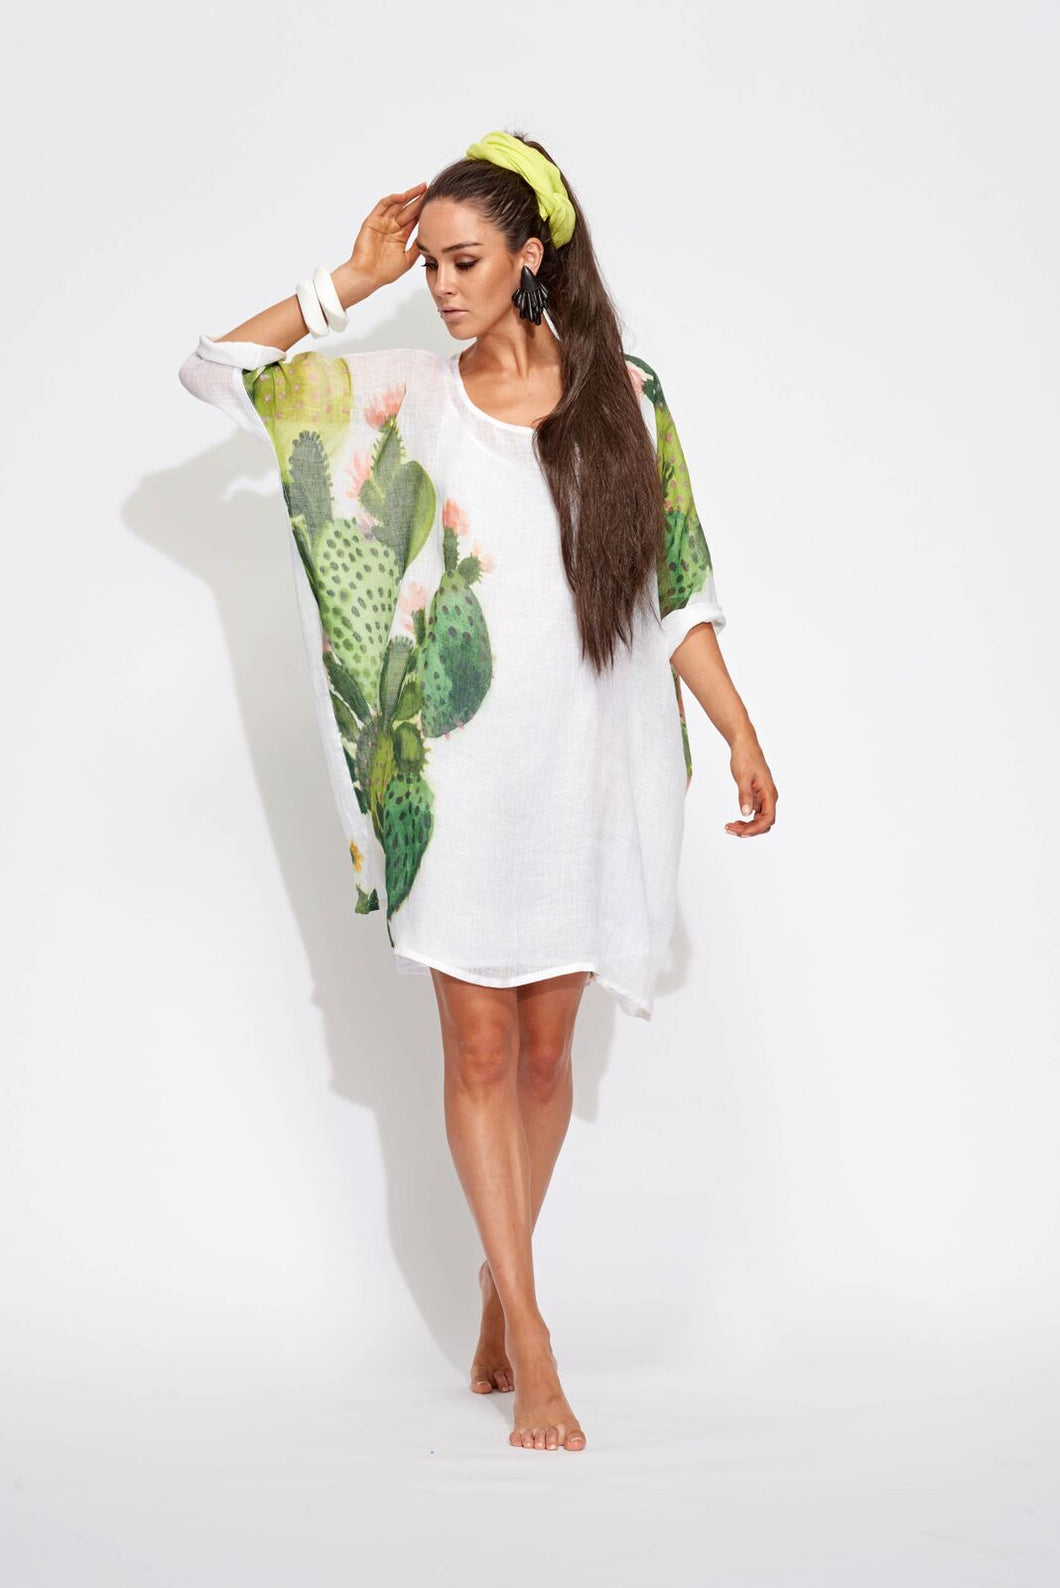 Cactus Long Sleeve Bat Wing Dress